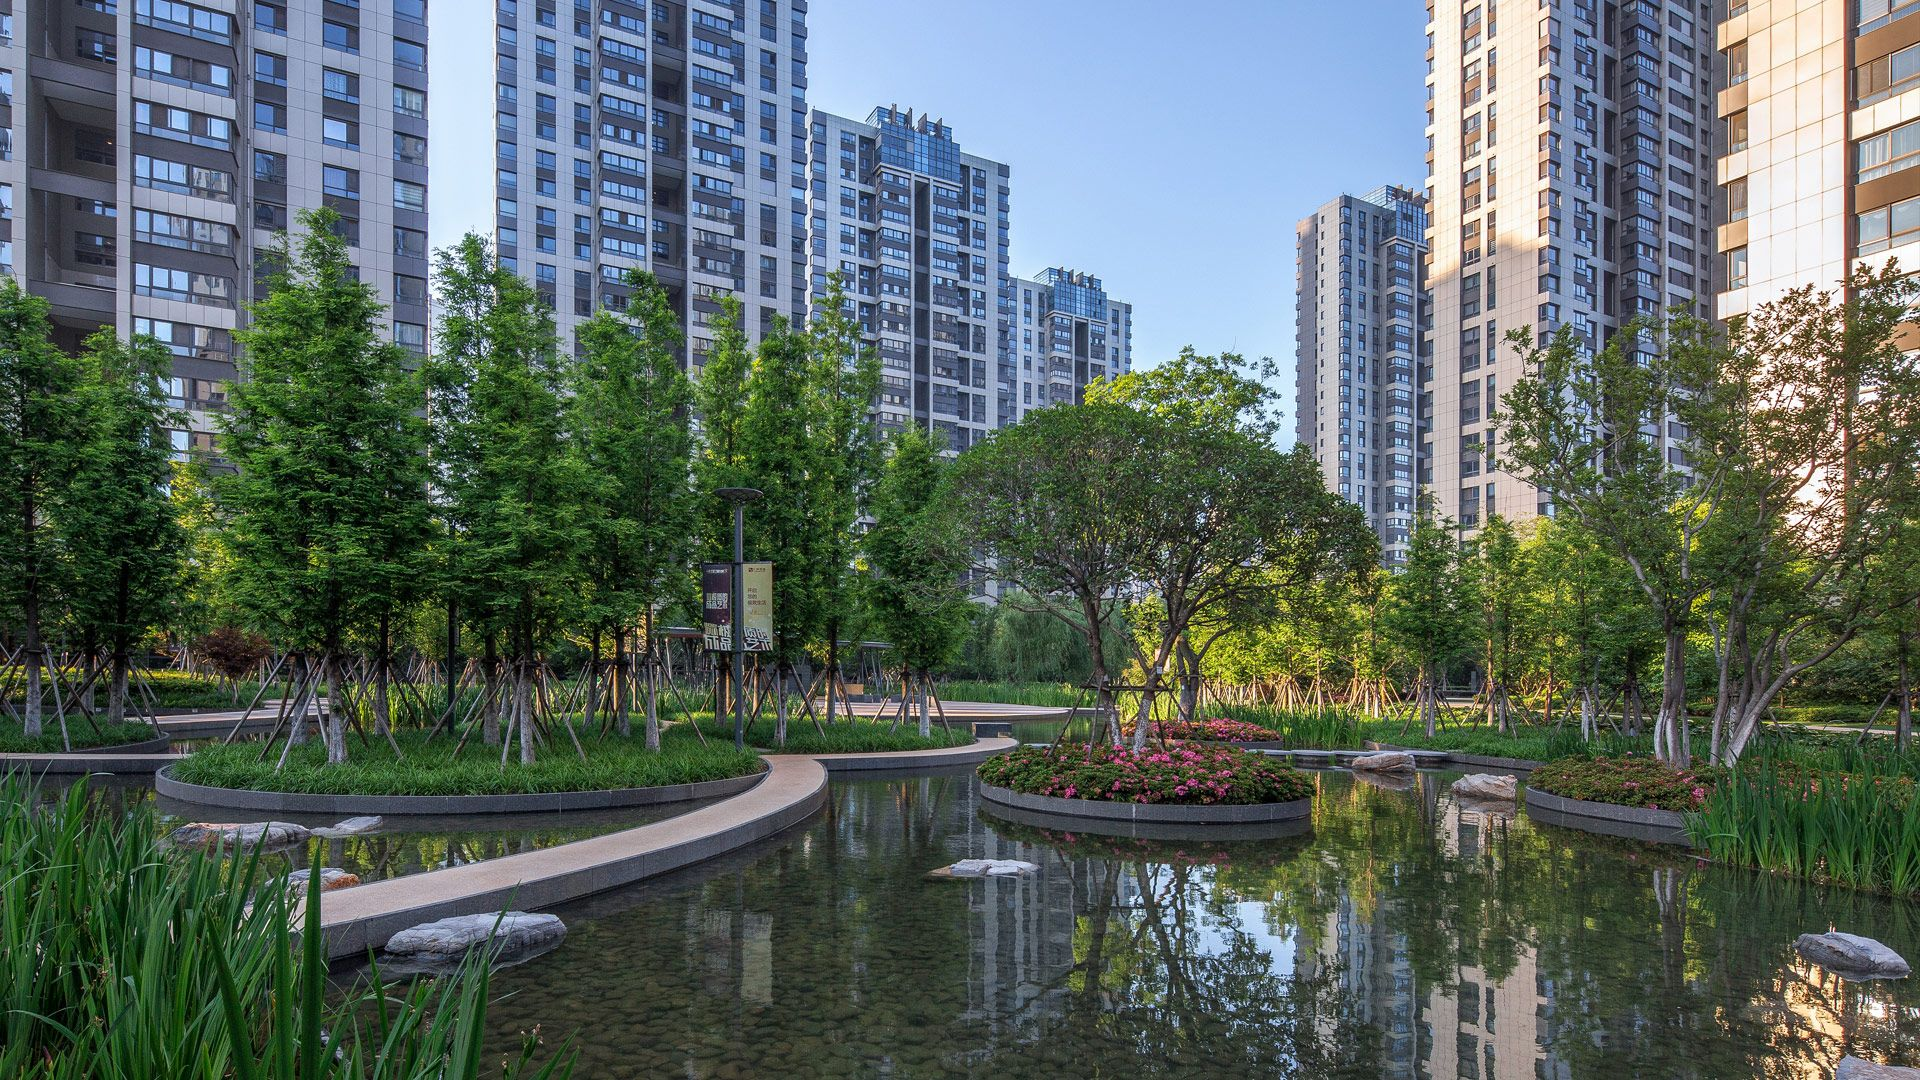 The Apartment Complex Is Set On A Completely Flat Plain To The East Of The Yangtze River Yet On A Site To Landscape Landscape Architecture Landscape Architect